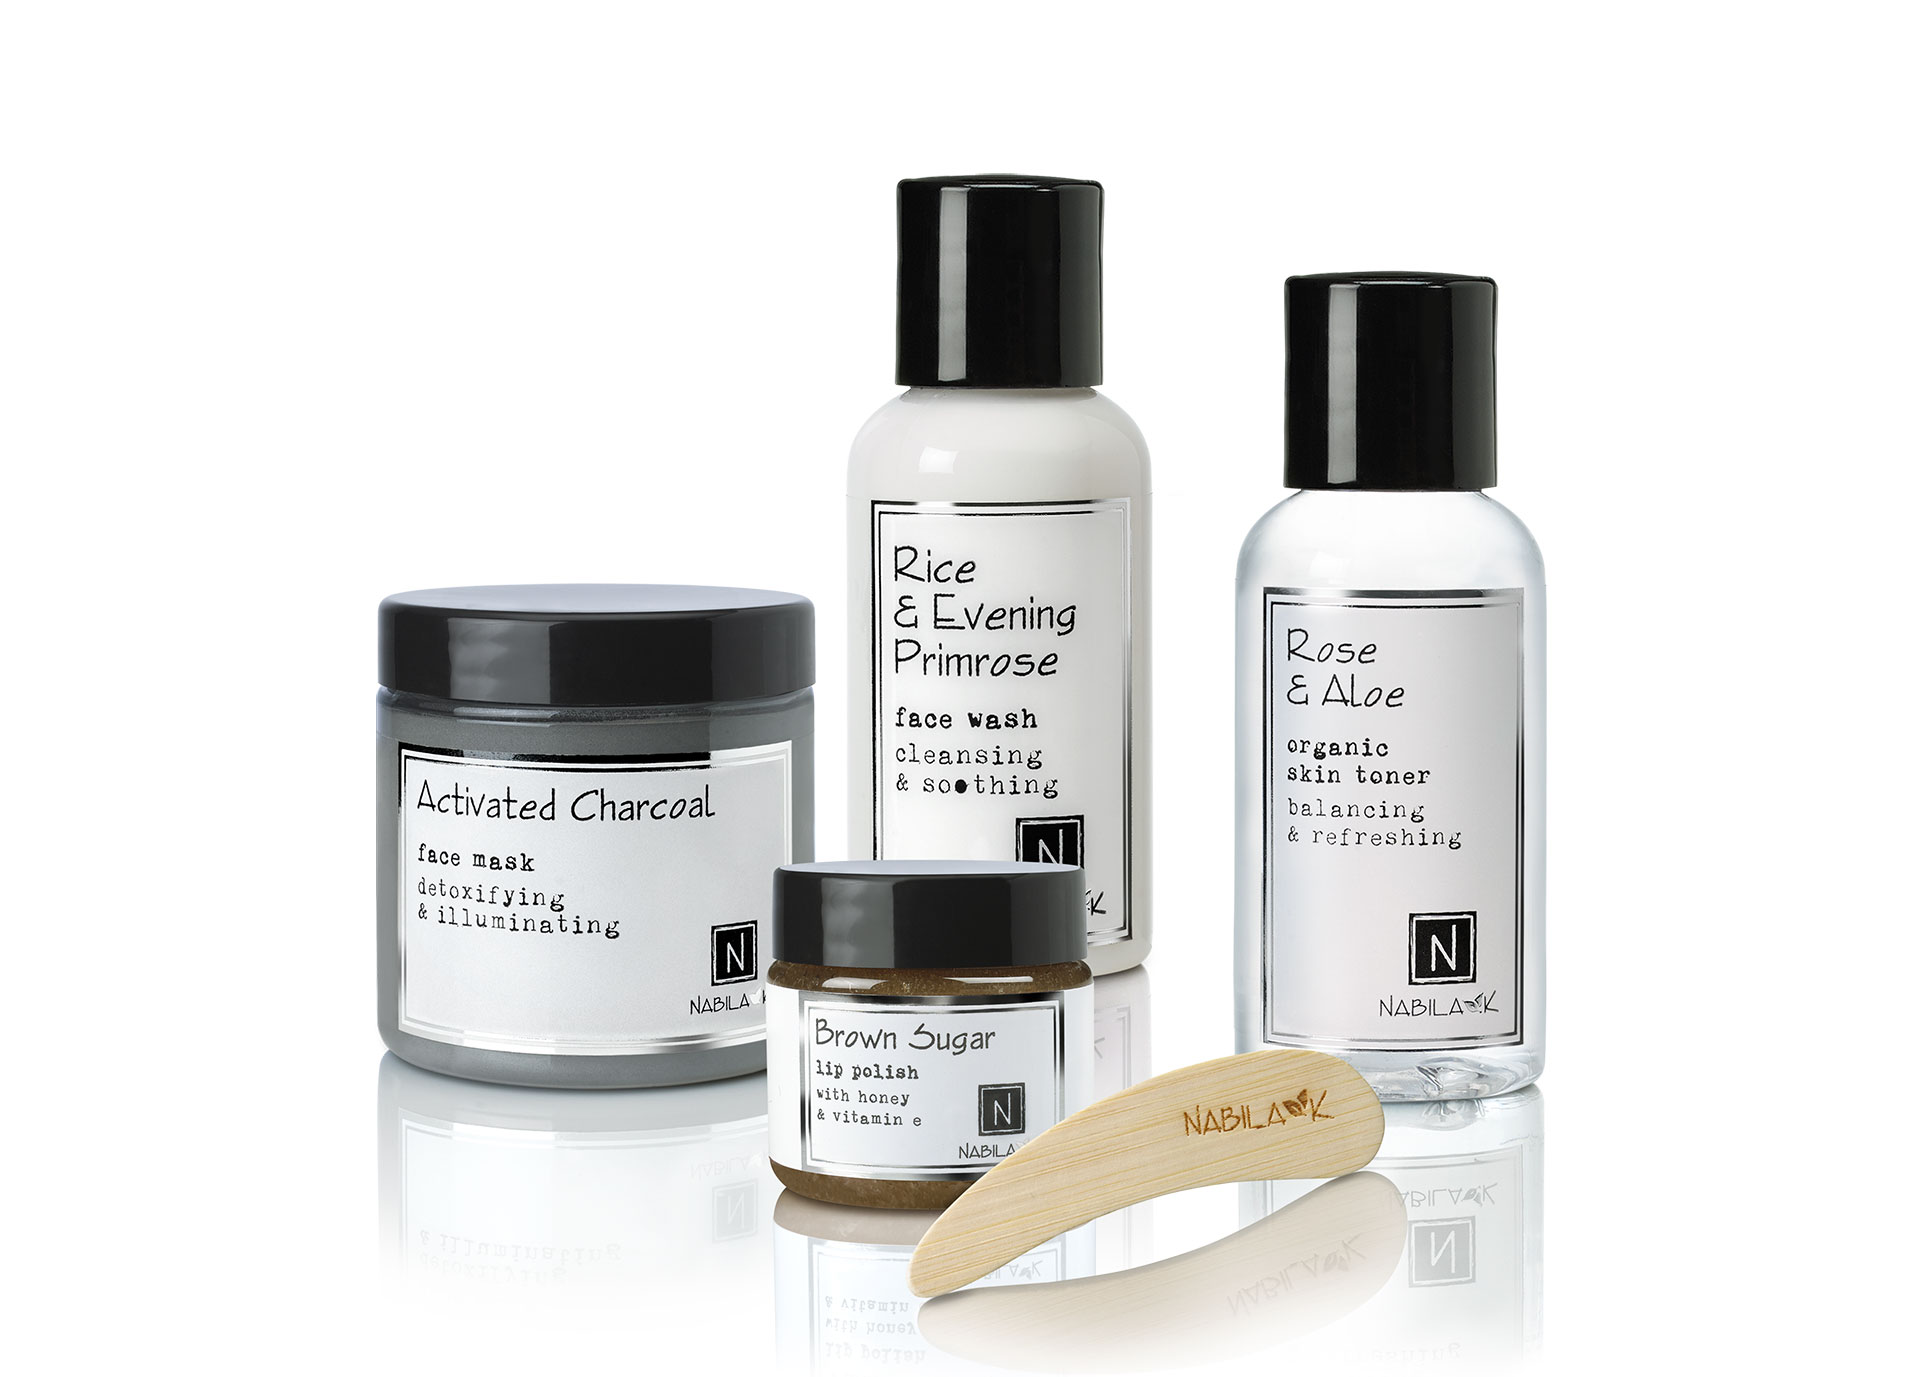 Repair and Care Beauty Box. Features Rose & Aloe, Rice and Evening Primrose extracts, the detoxifying charcoal, and gentle brown sugar scrub.